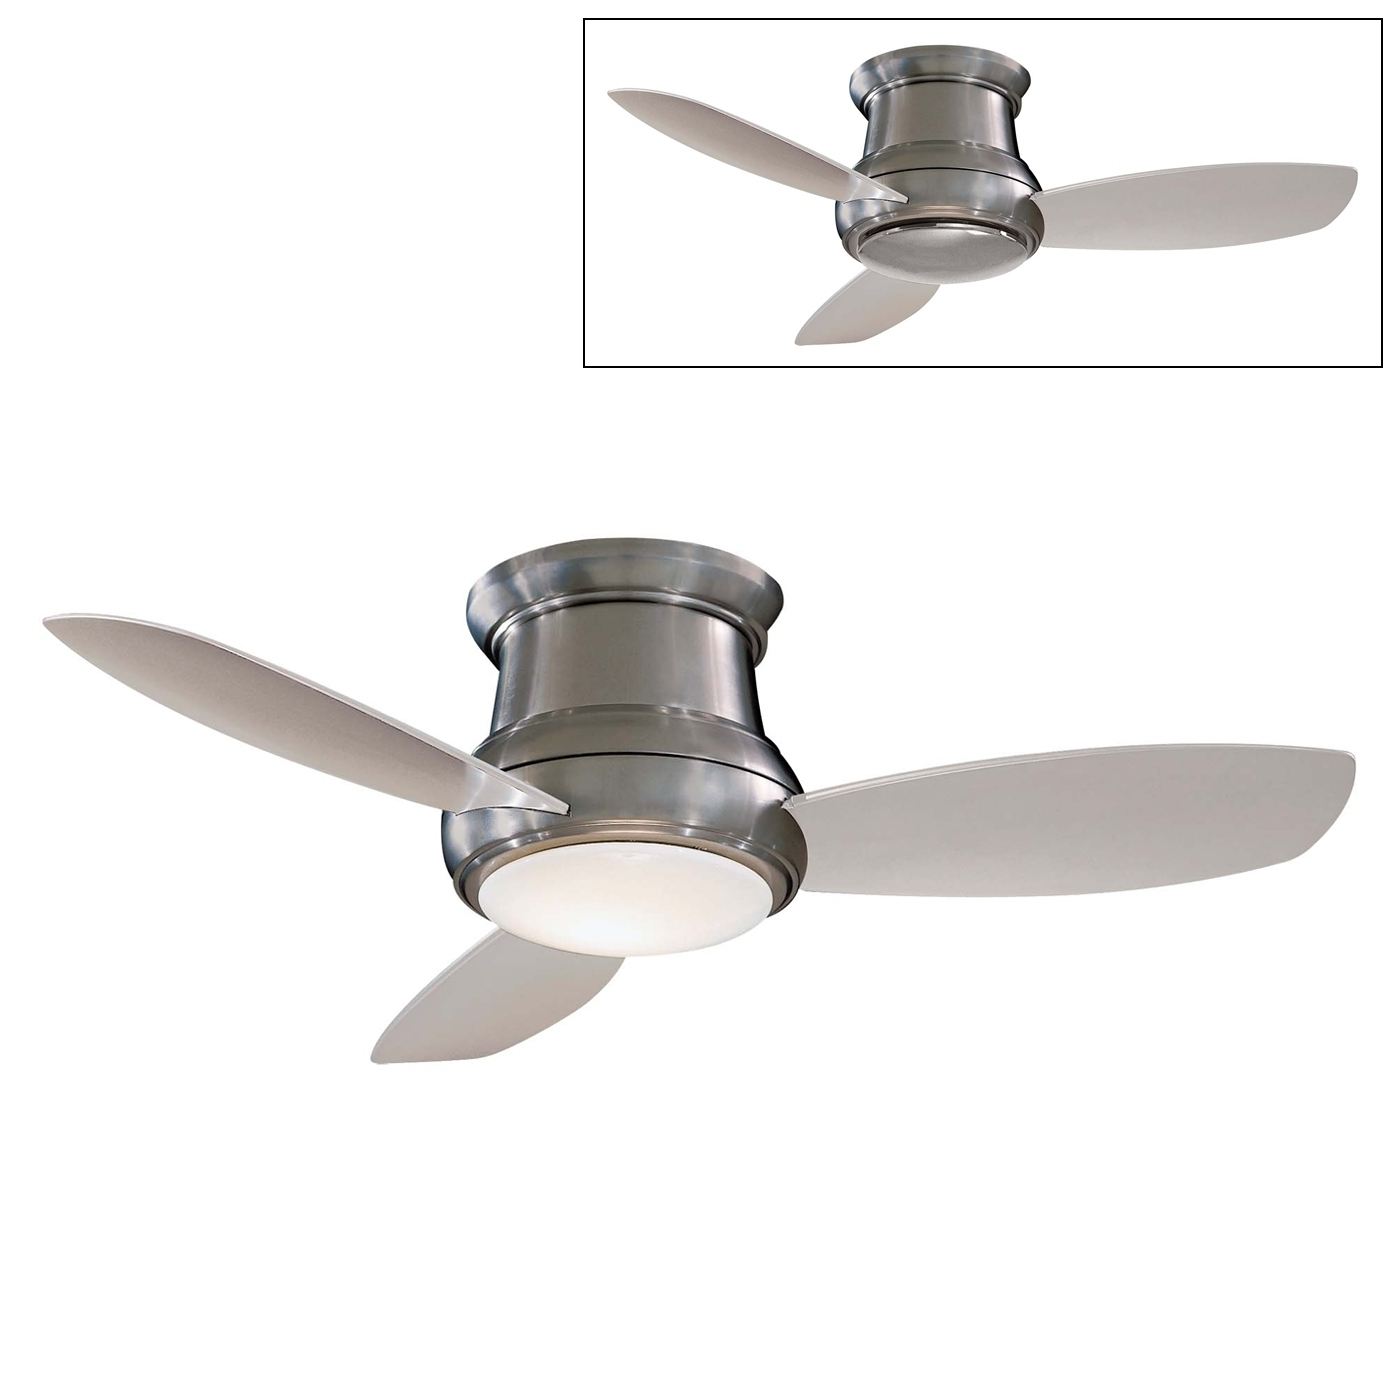 Best And Newest Outdoor Ceiling Fans At Menards In Ceiling Fan: Astounding Menards Ceiling Fans For Home Lowes Ceiling (View 7 of 20)